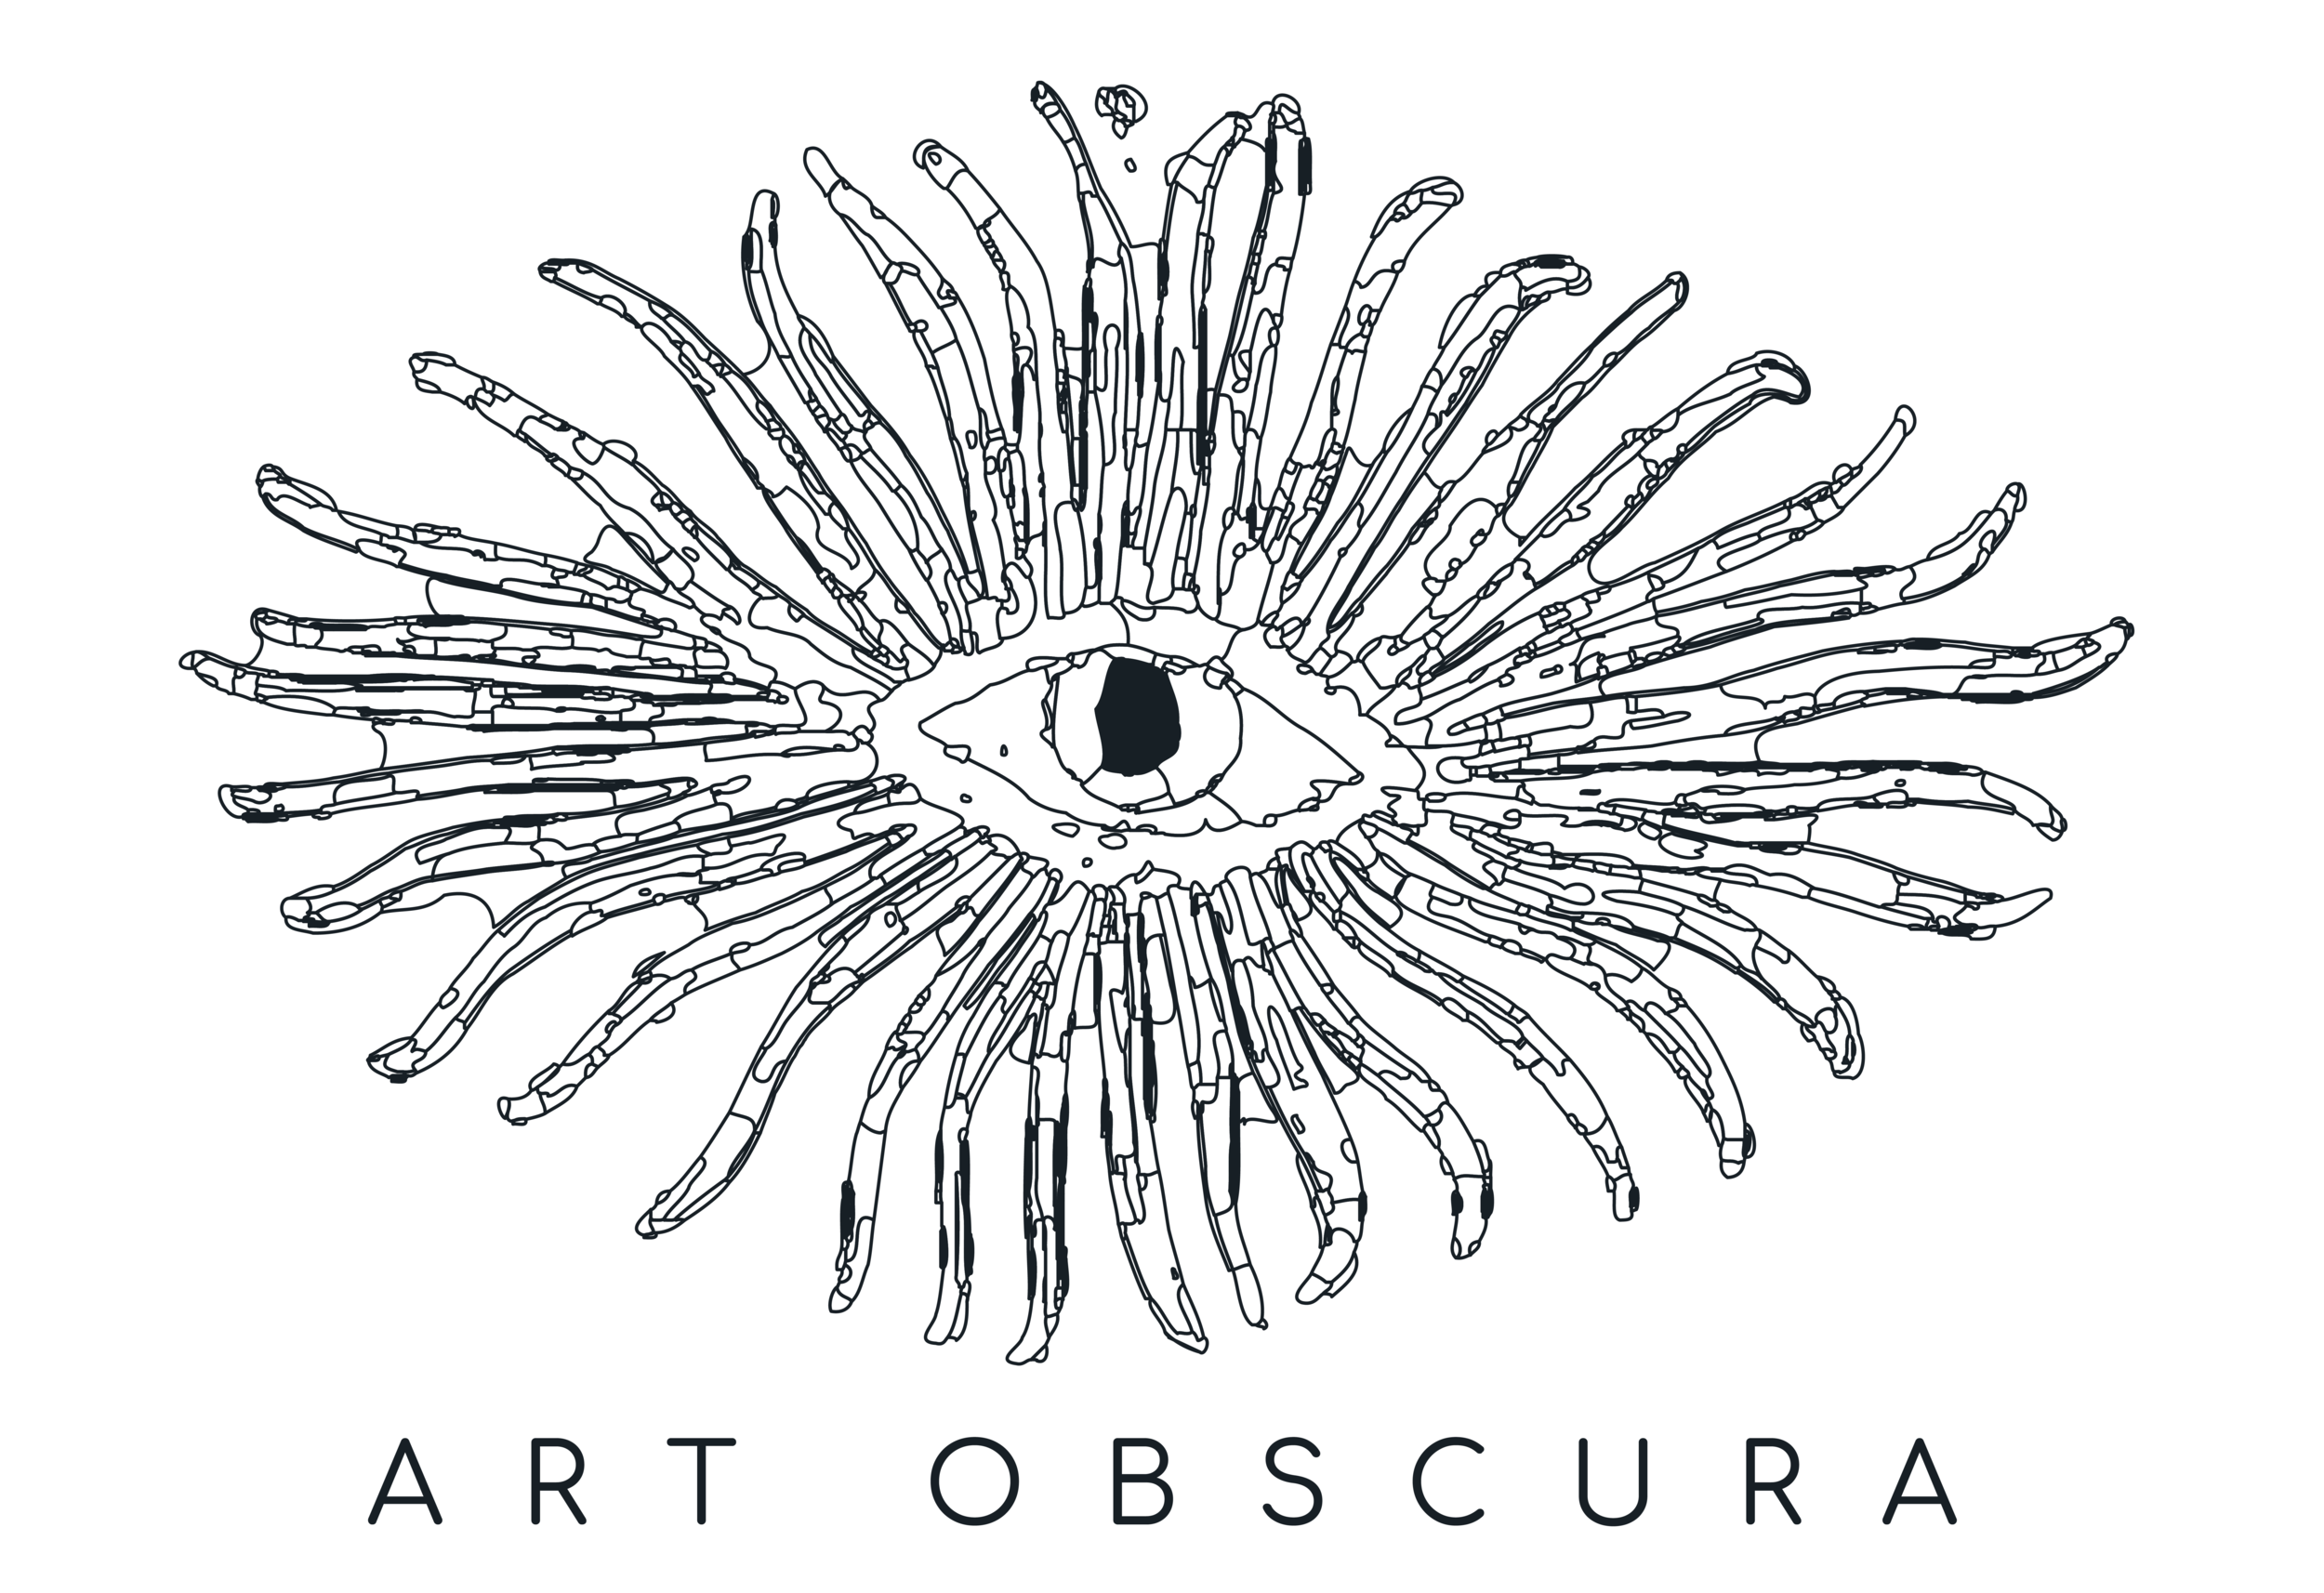 art_obscura_black_on_white_o (1).png